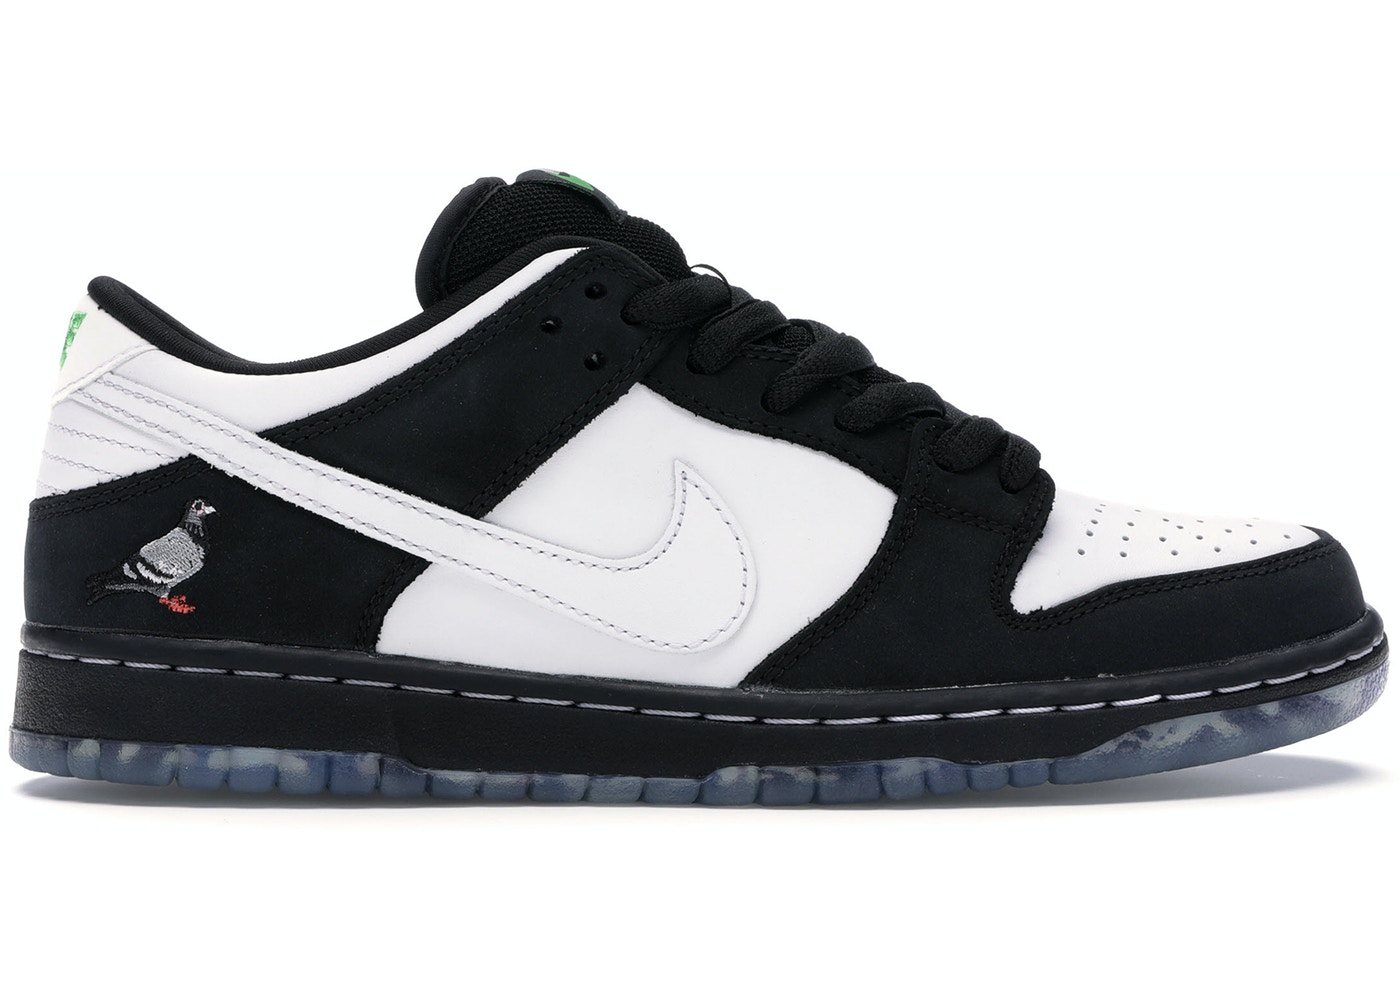 innovative design cff06 d2076 Nike SB Dunk Low Staple Panda Pigeon